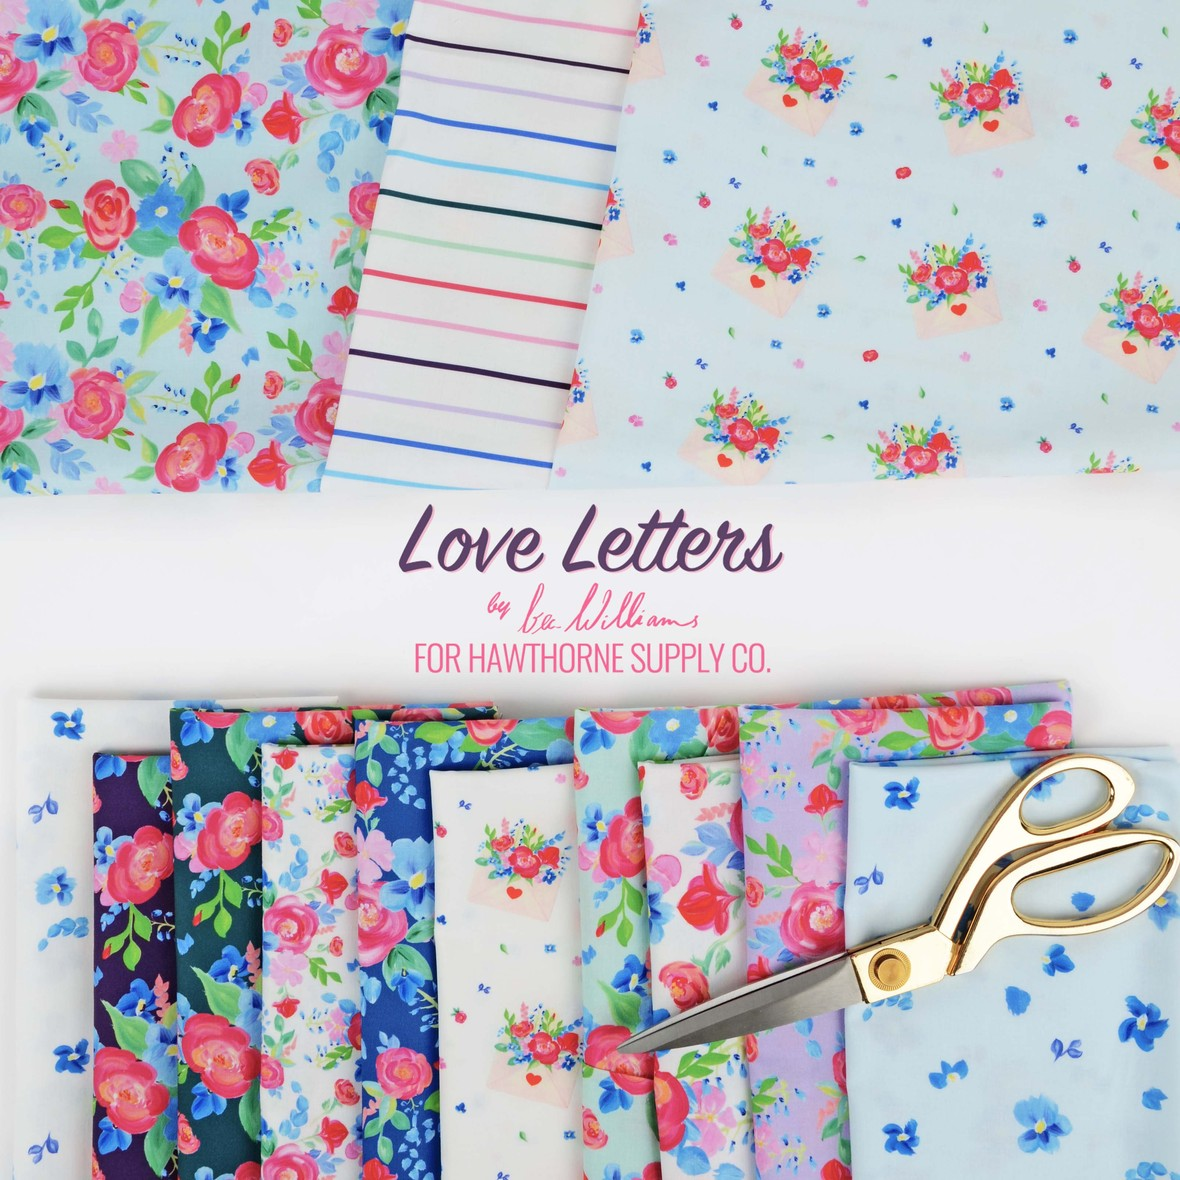 Love Letters Fabric Poster Bec Williams for Hawthorne Supply Co